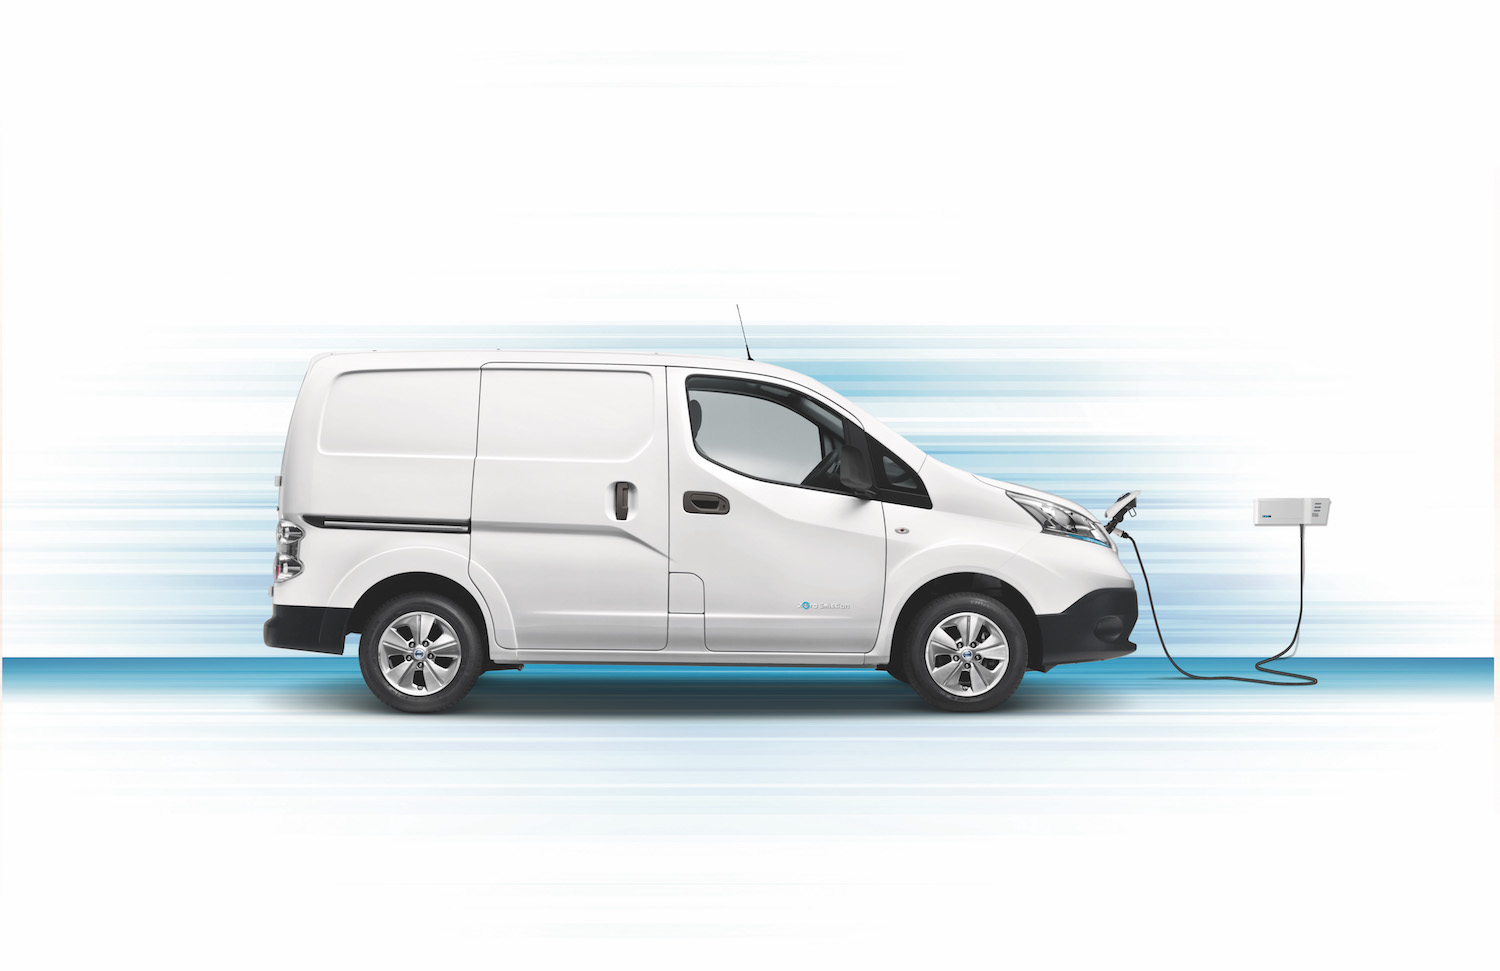 New Nissan e-NV200 profile